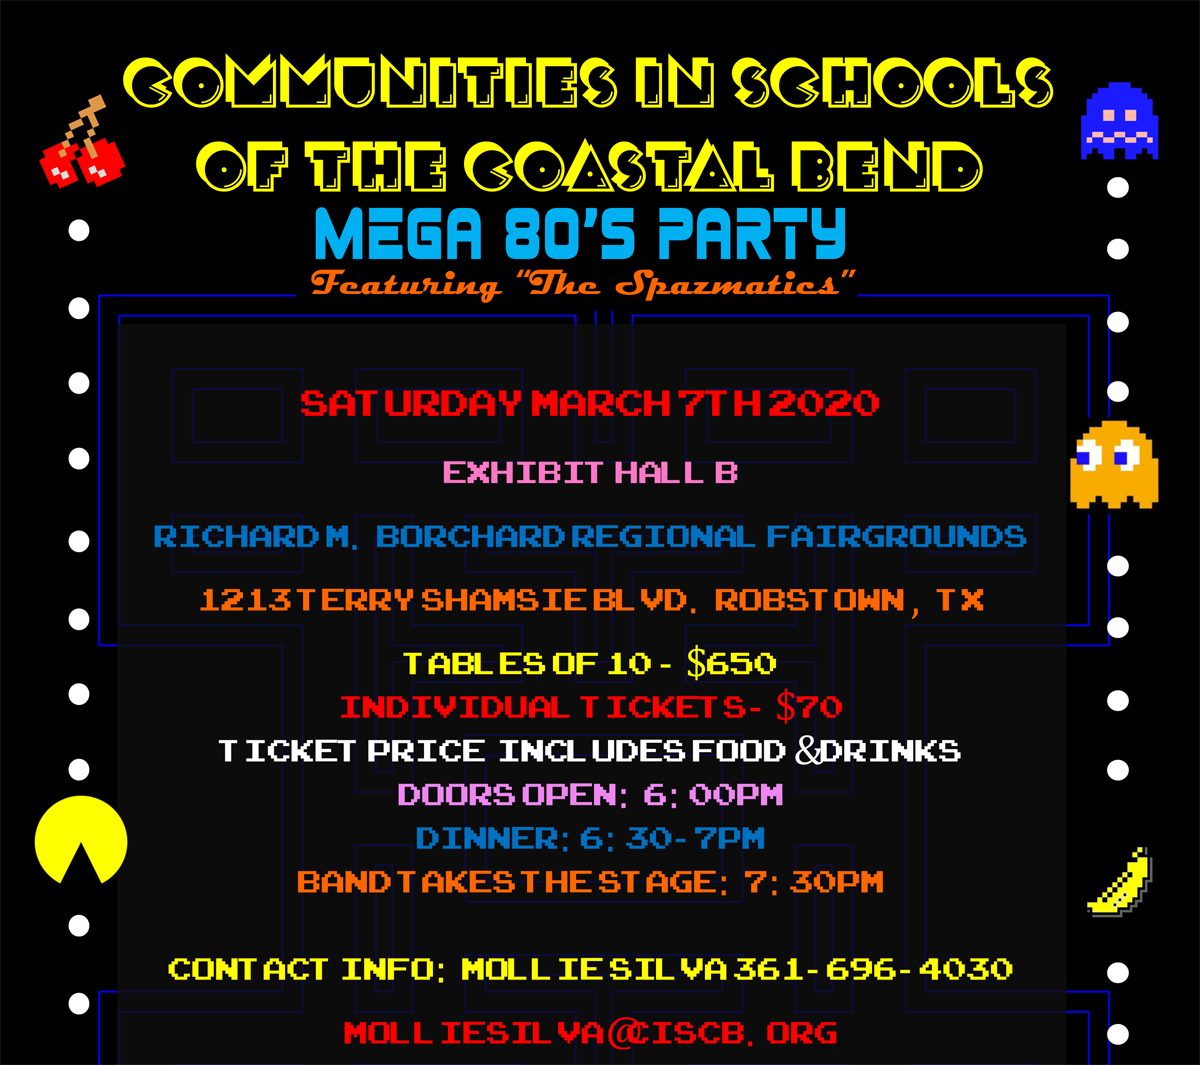 Mega 80s Banner with event information